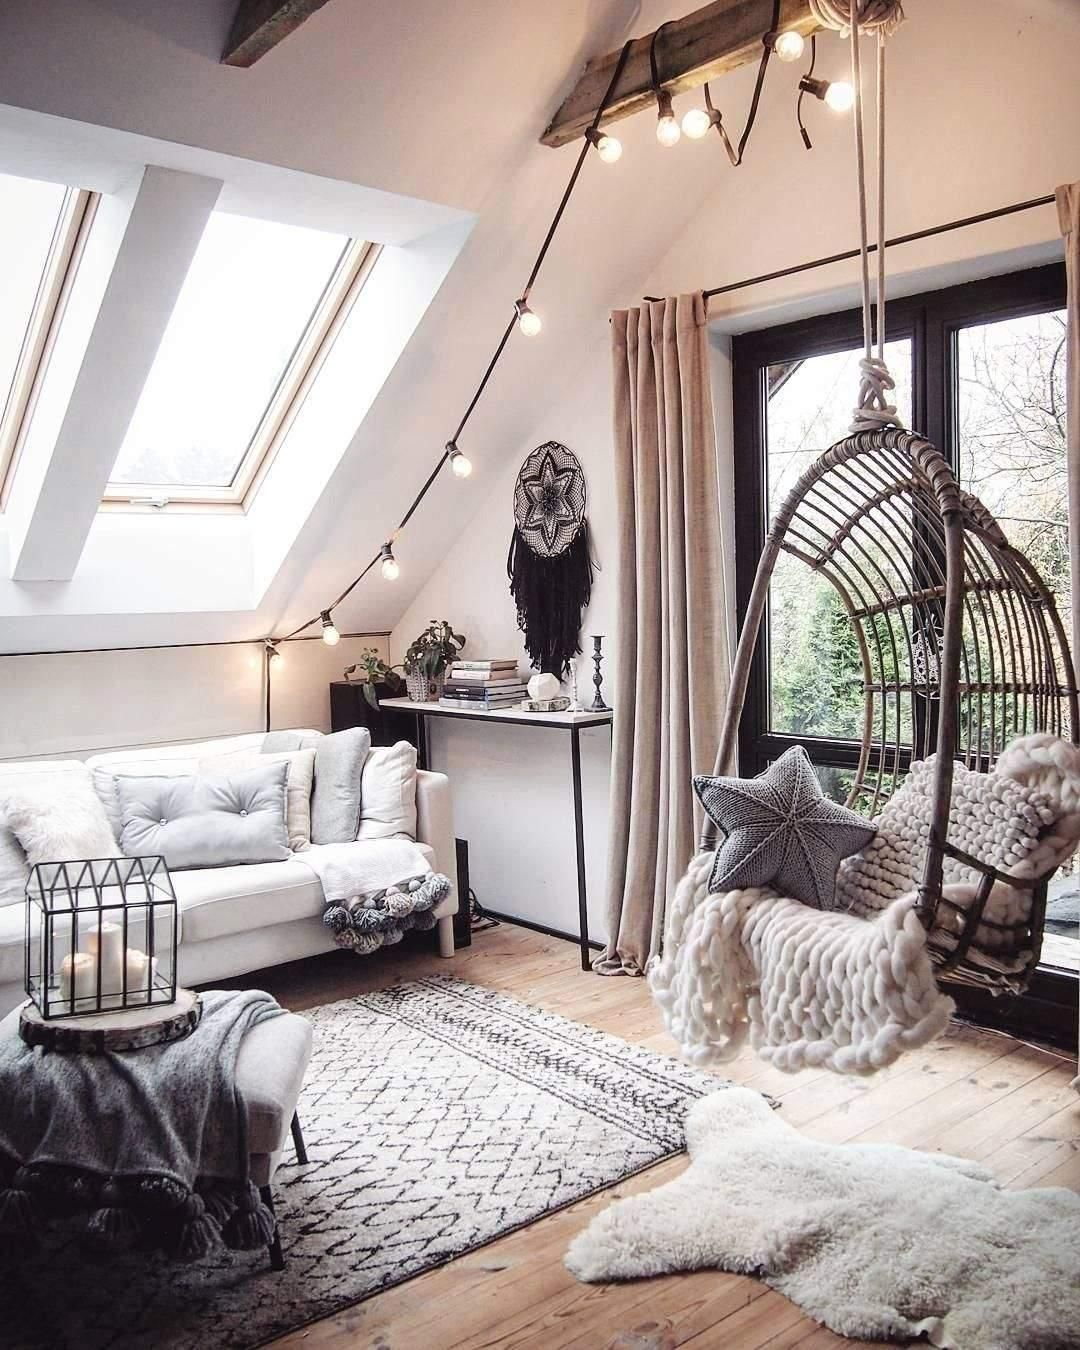 Fine Deko Ideen Schlafzimmer Tumblr That You Must Know Youre In